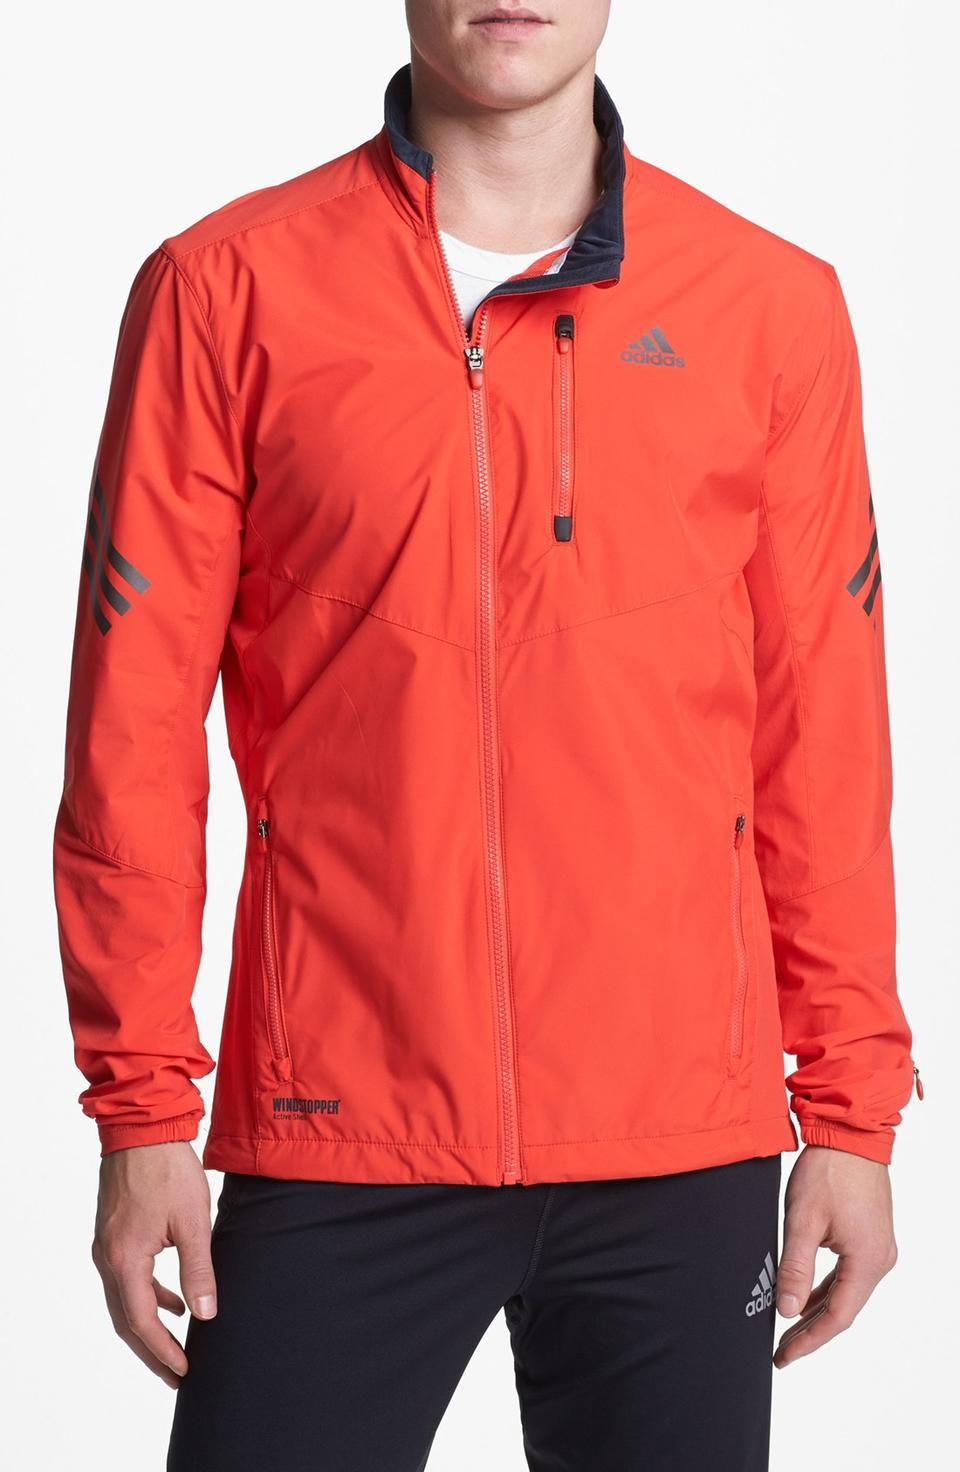 Great color on this mens supernova track jacket i would see myself